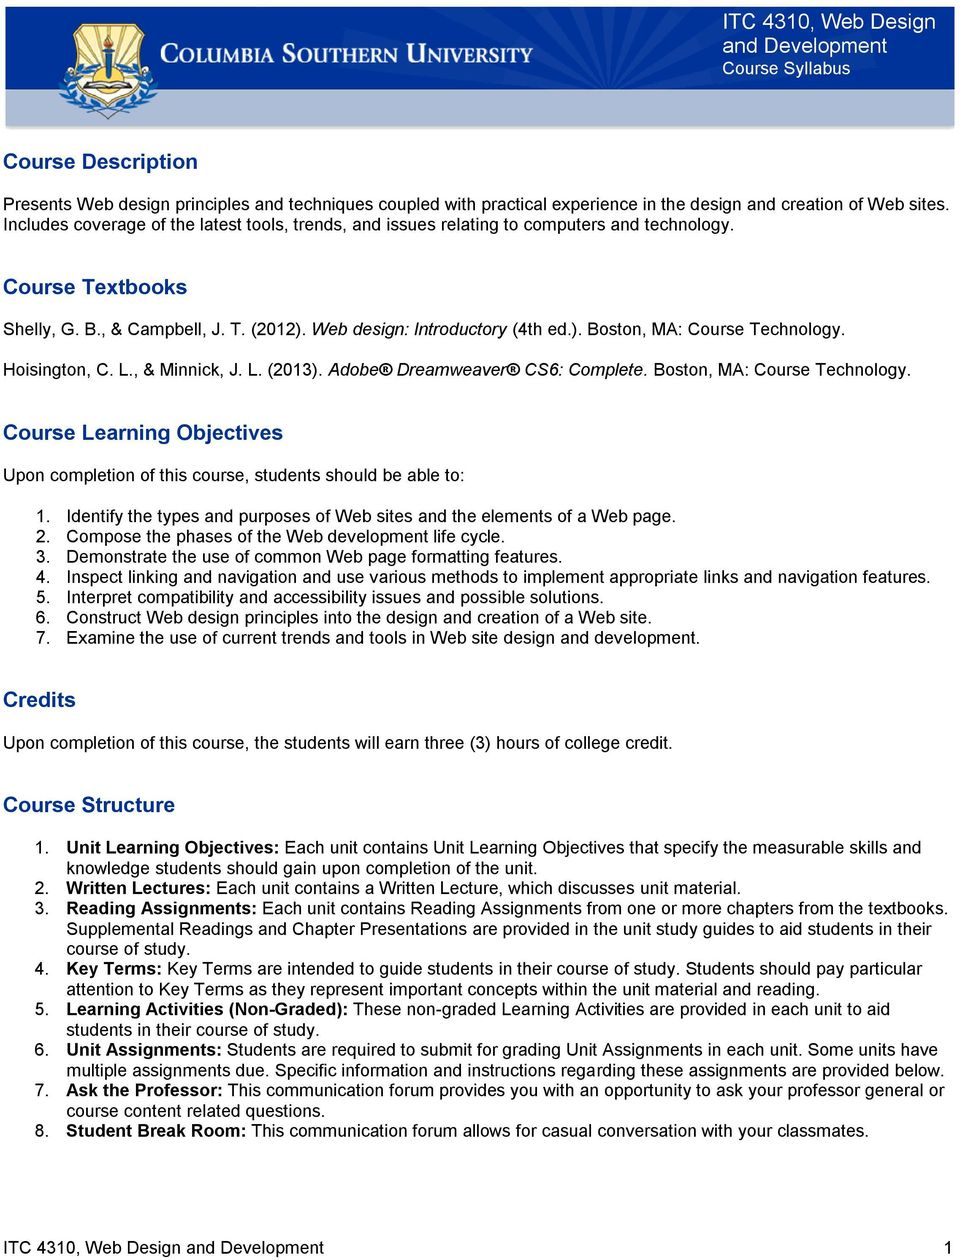 Shelly G B Campbell J T 2012 Web Design Introductory 4th Ed Boston Ma Course Technology Pdf Free Download